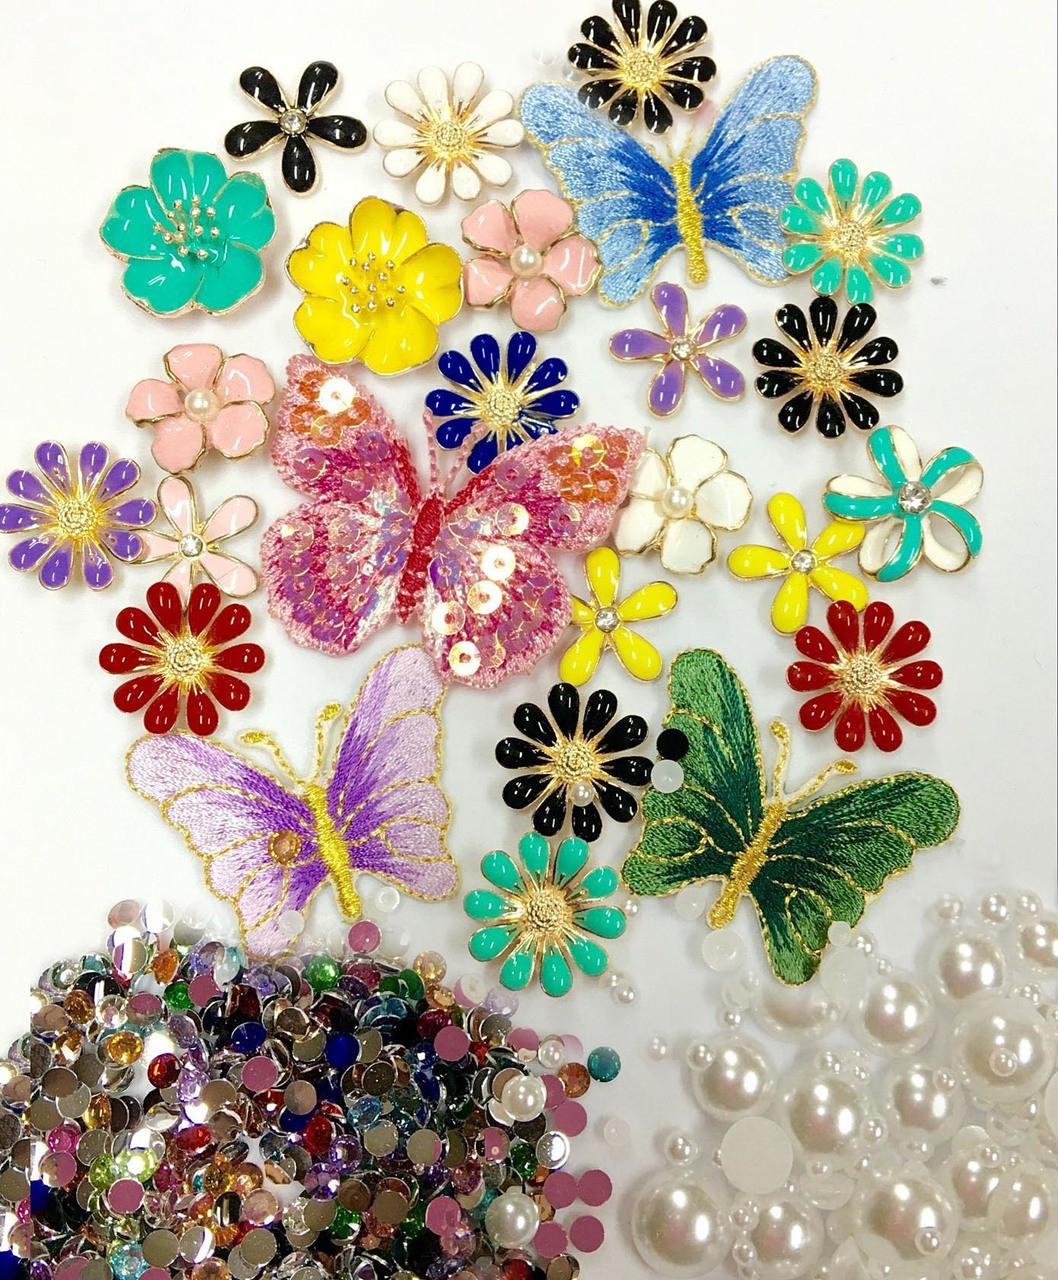 Sale DIY 3D Alloy Bling Bling Glass Gems Kawaii Resin Flatback Decoden Cabochons Cell Phone Case Deco Kit Not A Finished Product